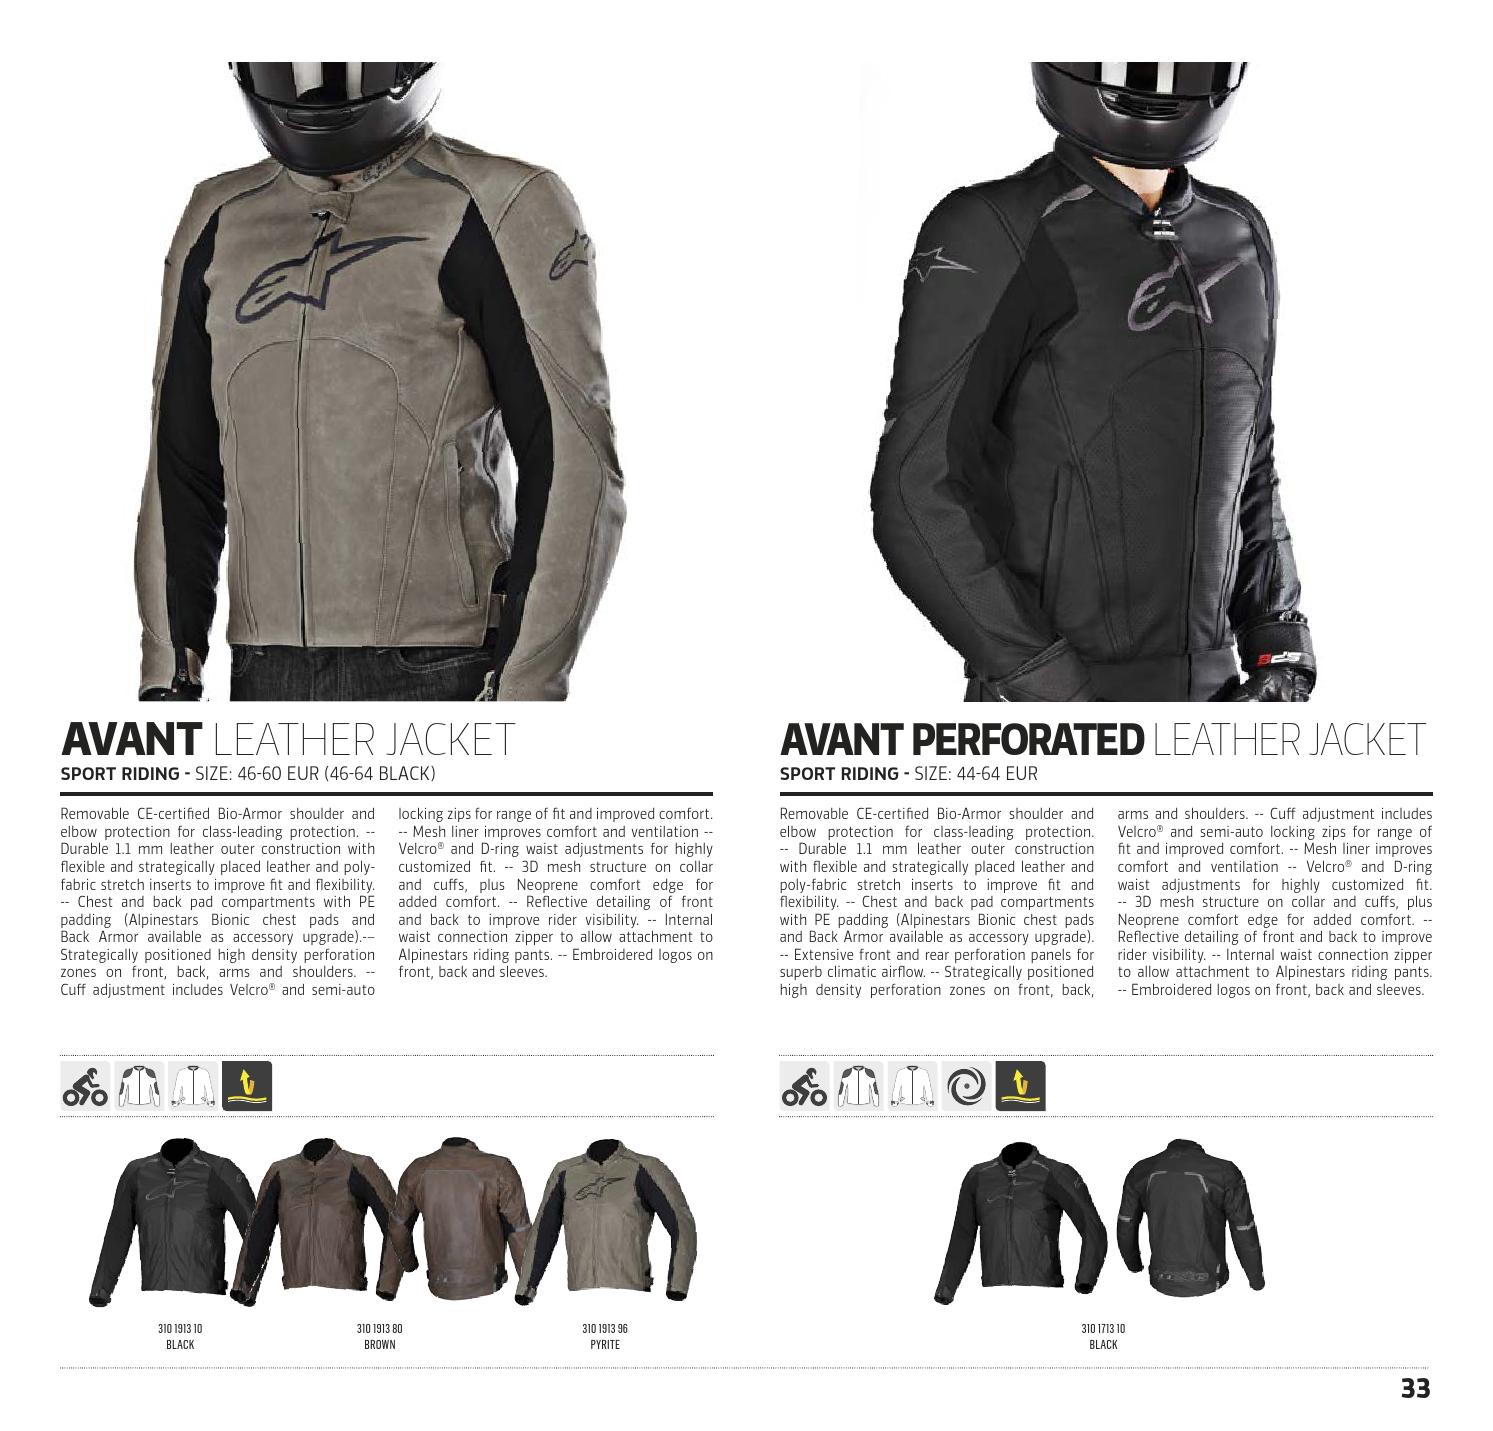 6eb442a404 Alpinestars Technical Road Apparel Catalogue 2015, USA by allbikes ...